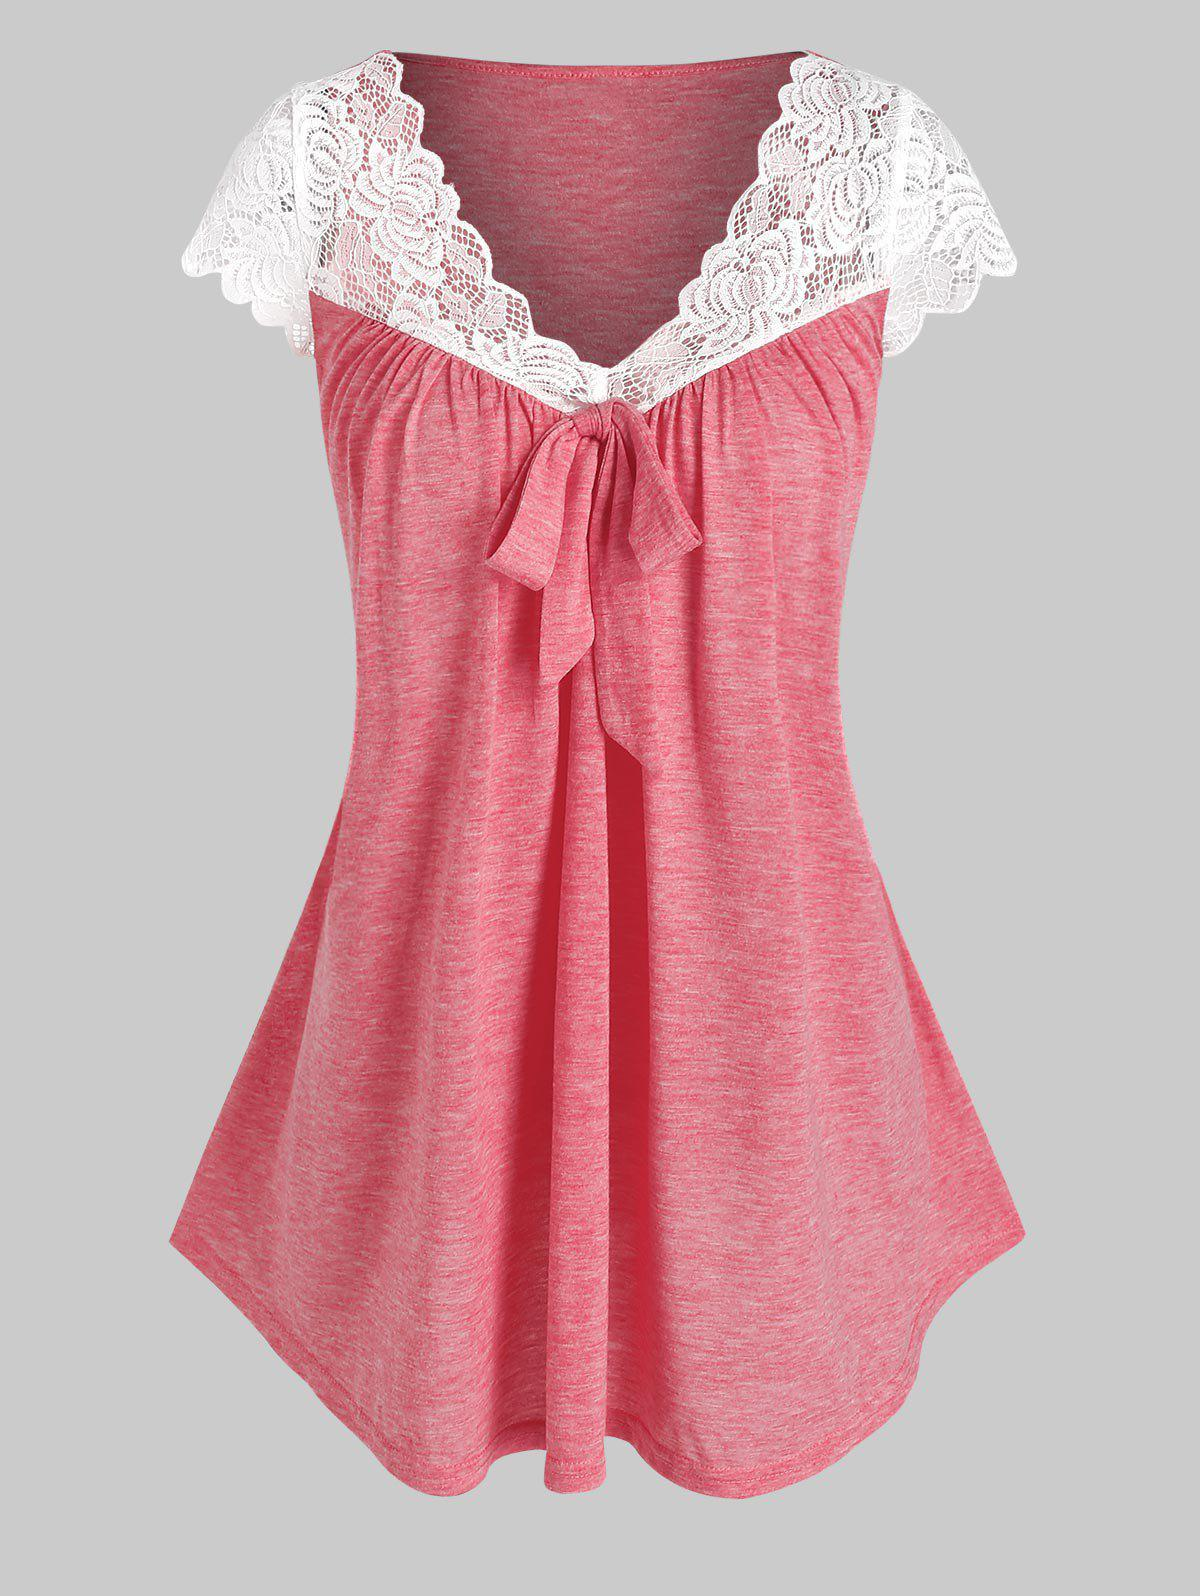 Affordable Flower Lace Insert Bowknot Detail Heathered T-shirt